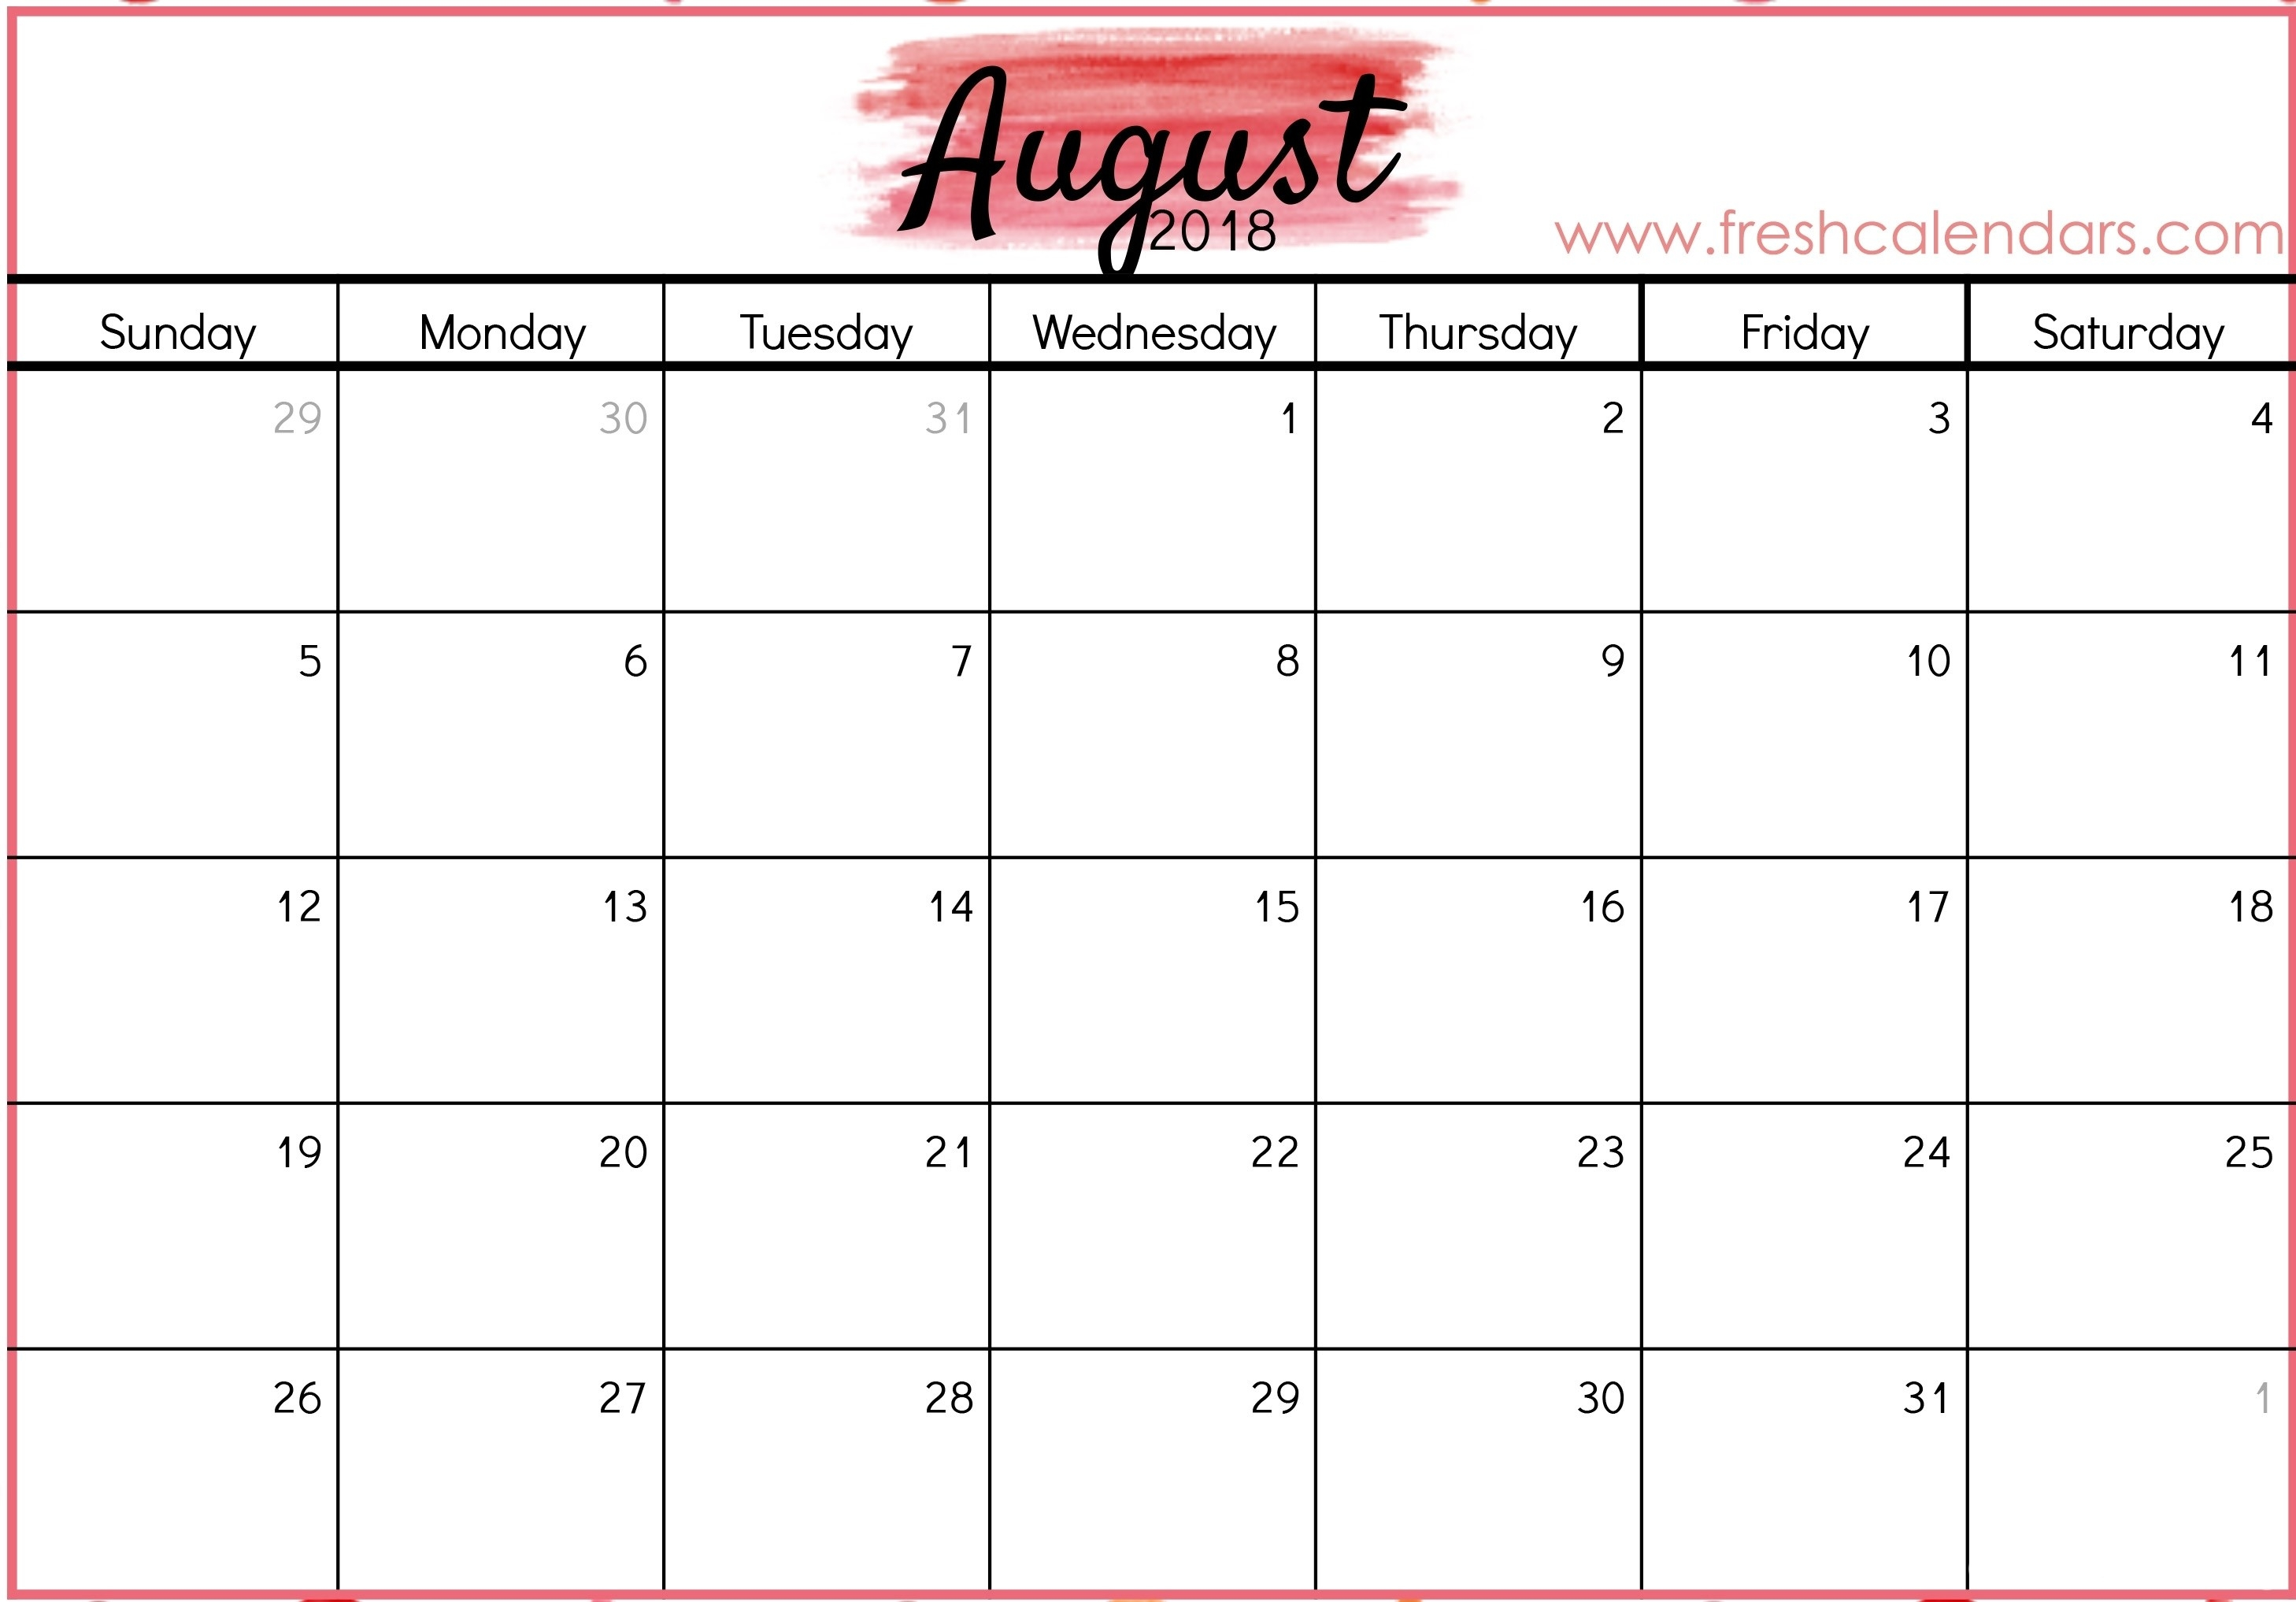 Calendar Template Legal Size | Free Calendar Template Example-Legal Size Calendar Template